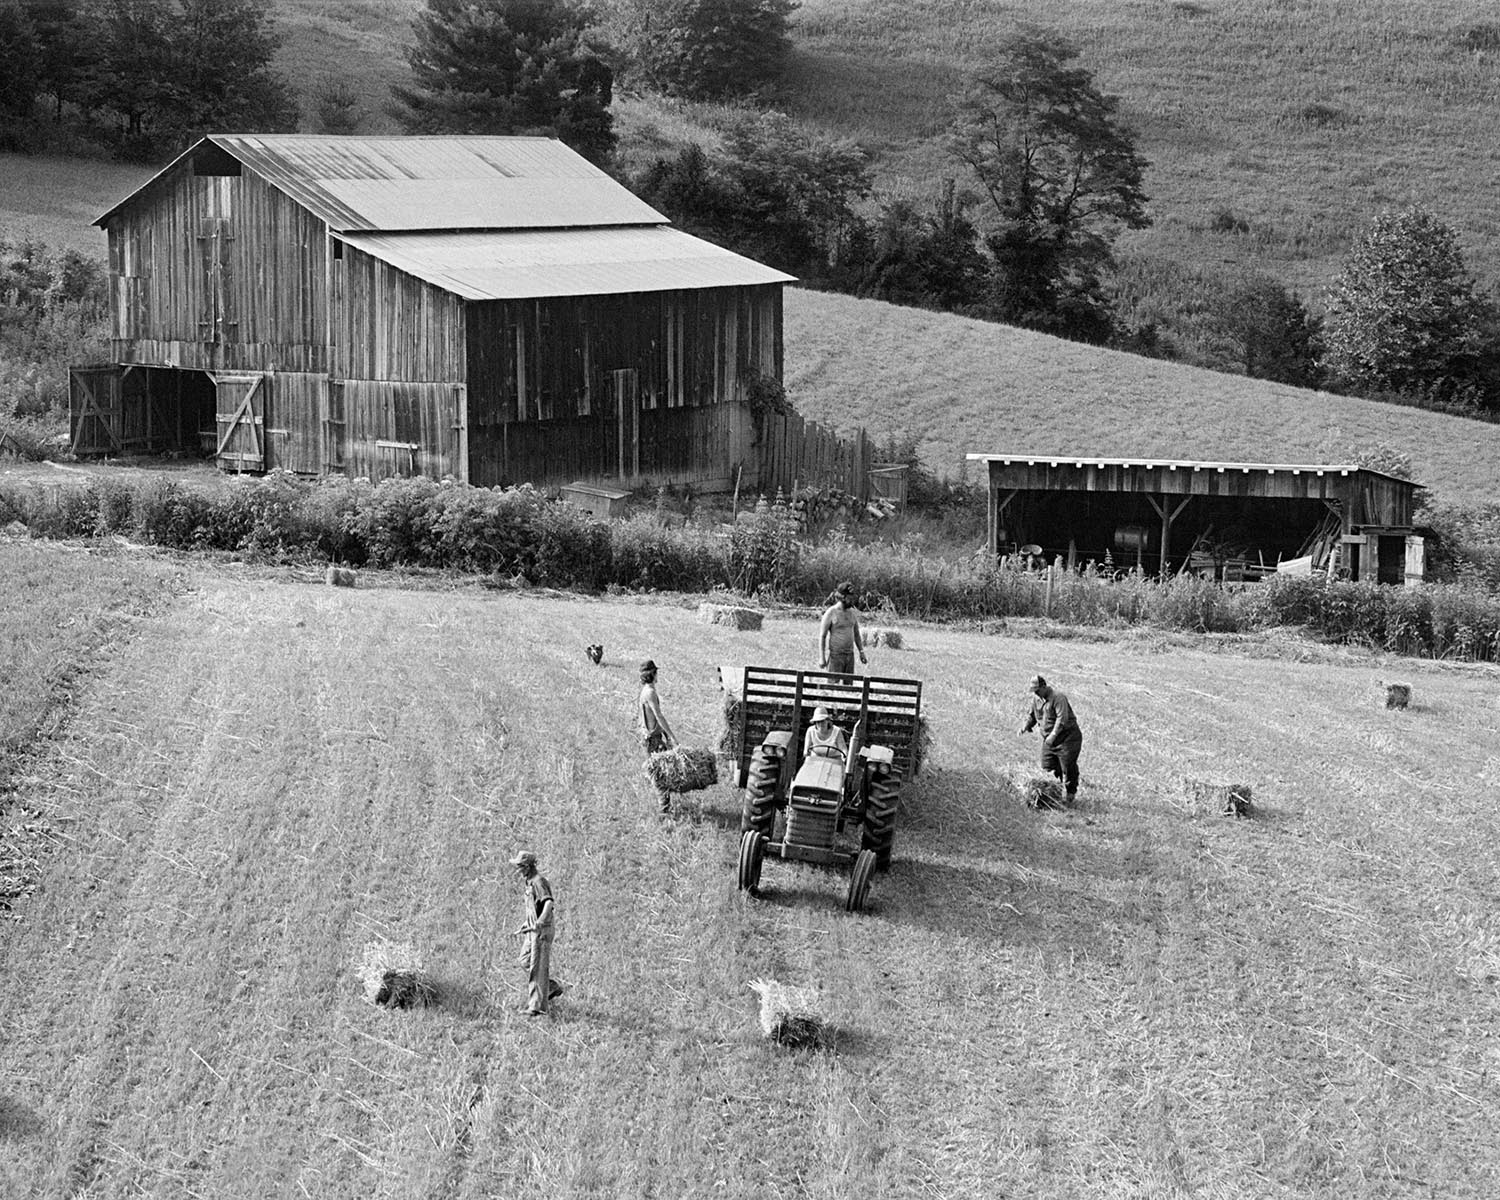 Family putting up hay, 1986 (book cover image)